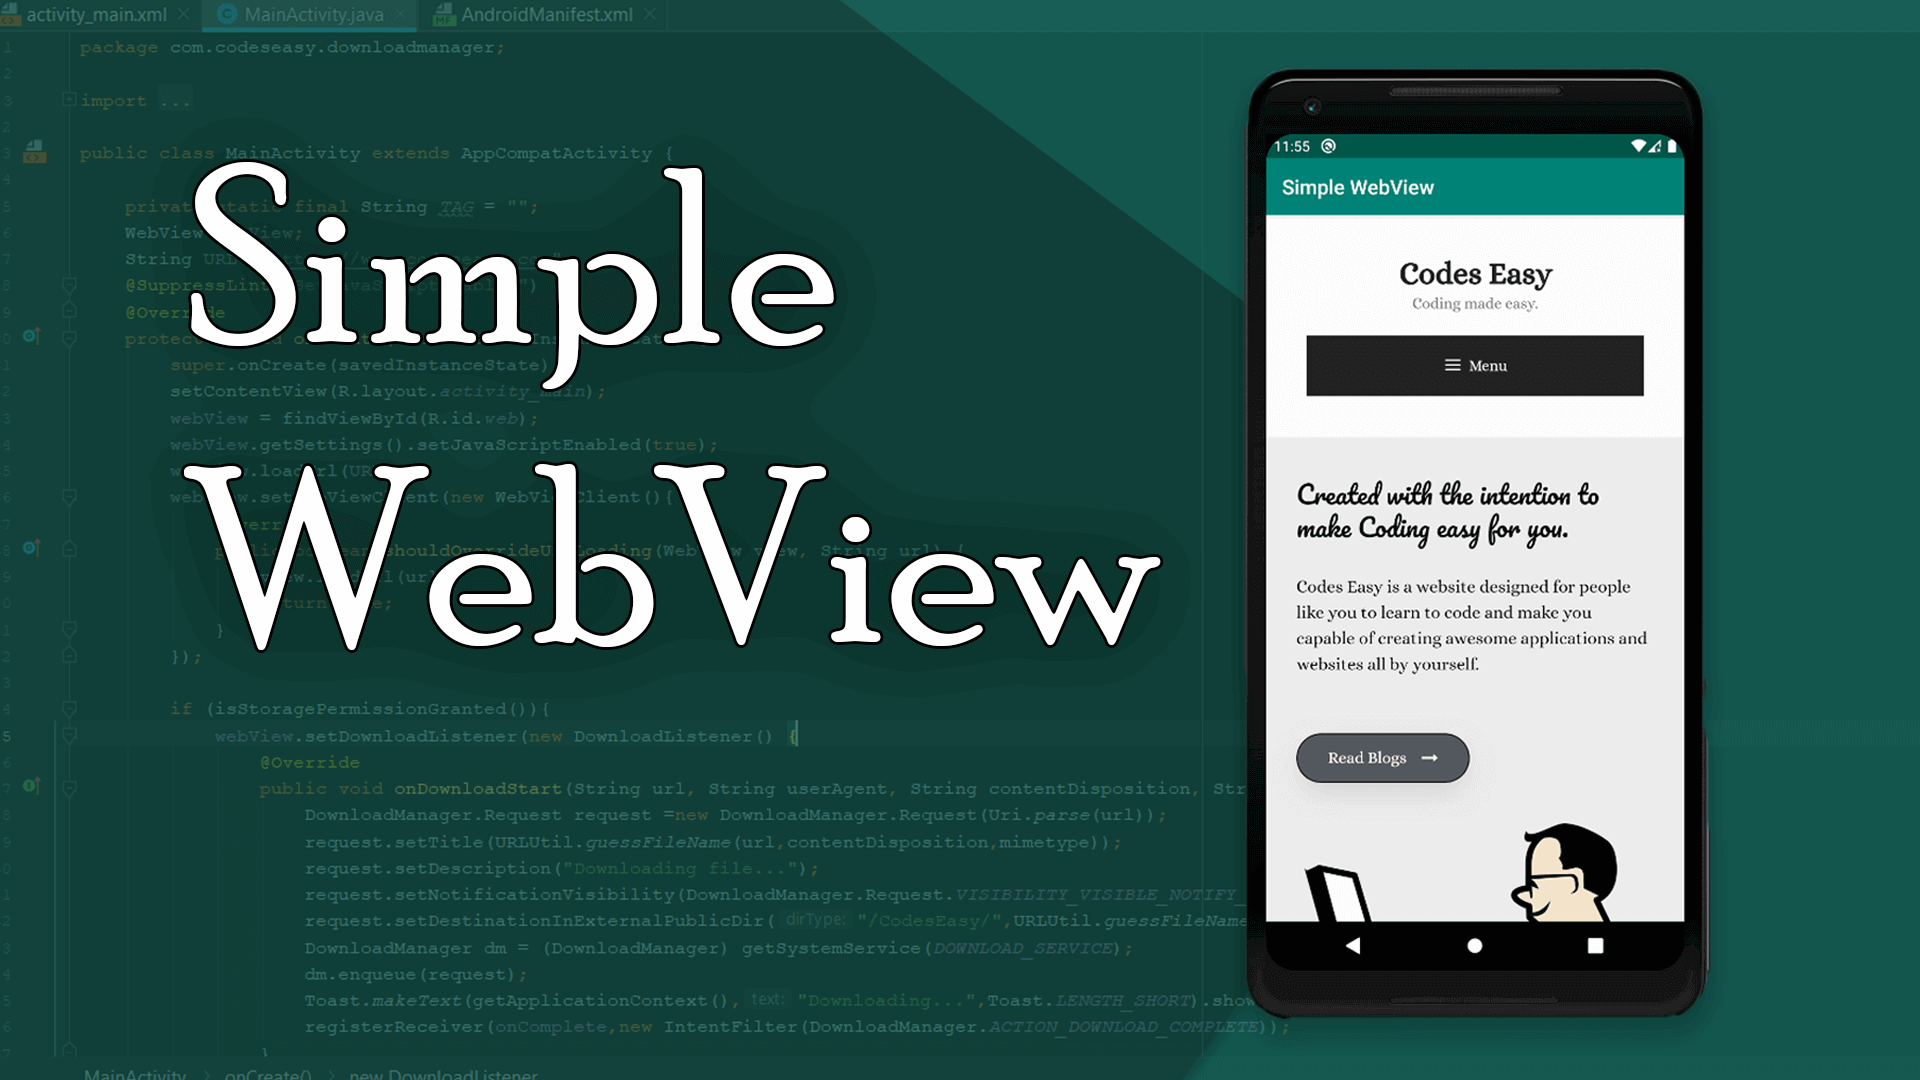 Simple WebView